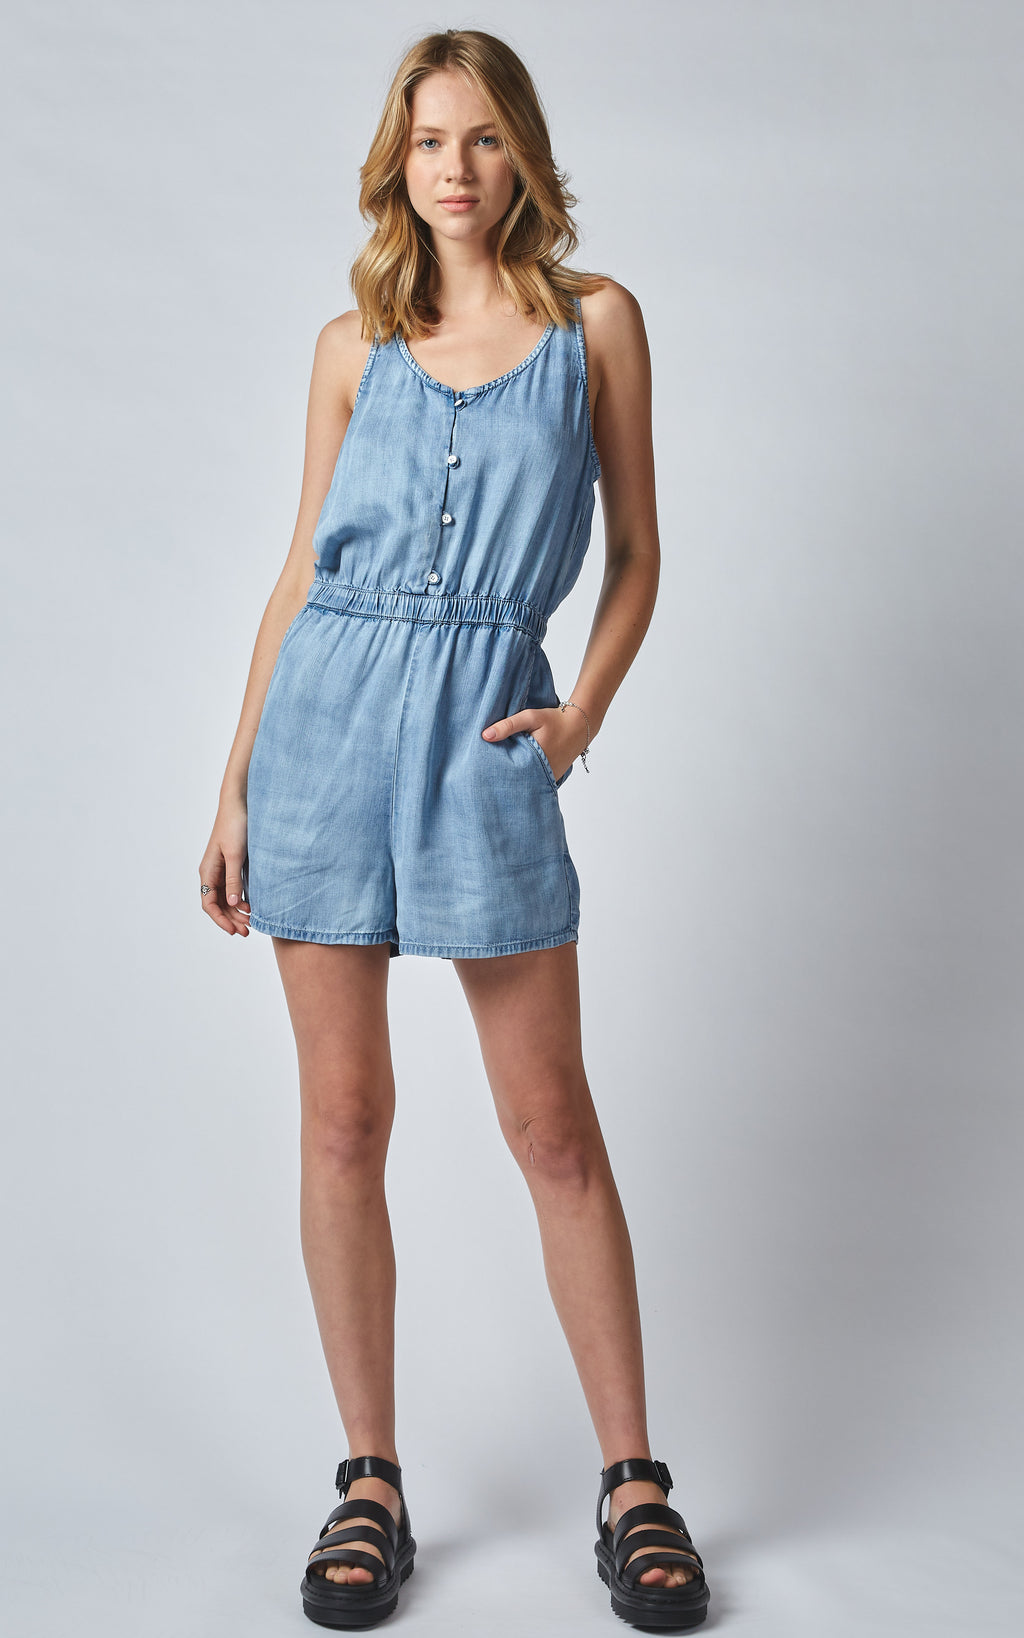 RAENI SPORTY TENCEL DENIM ROMPER